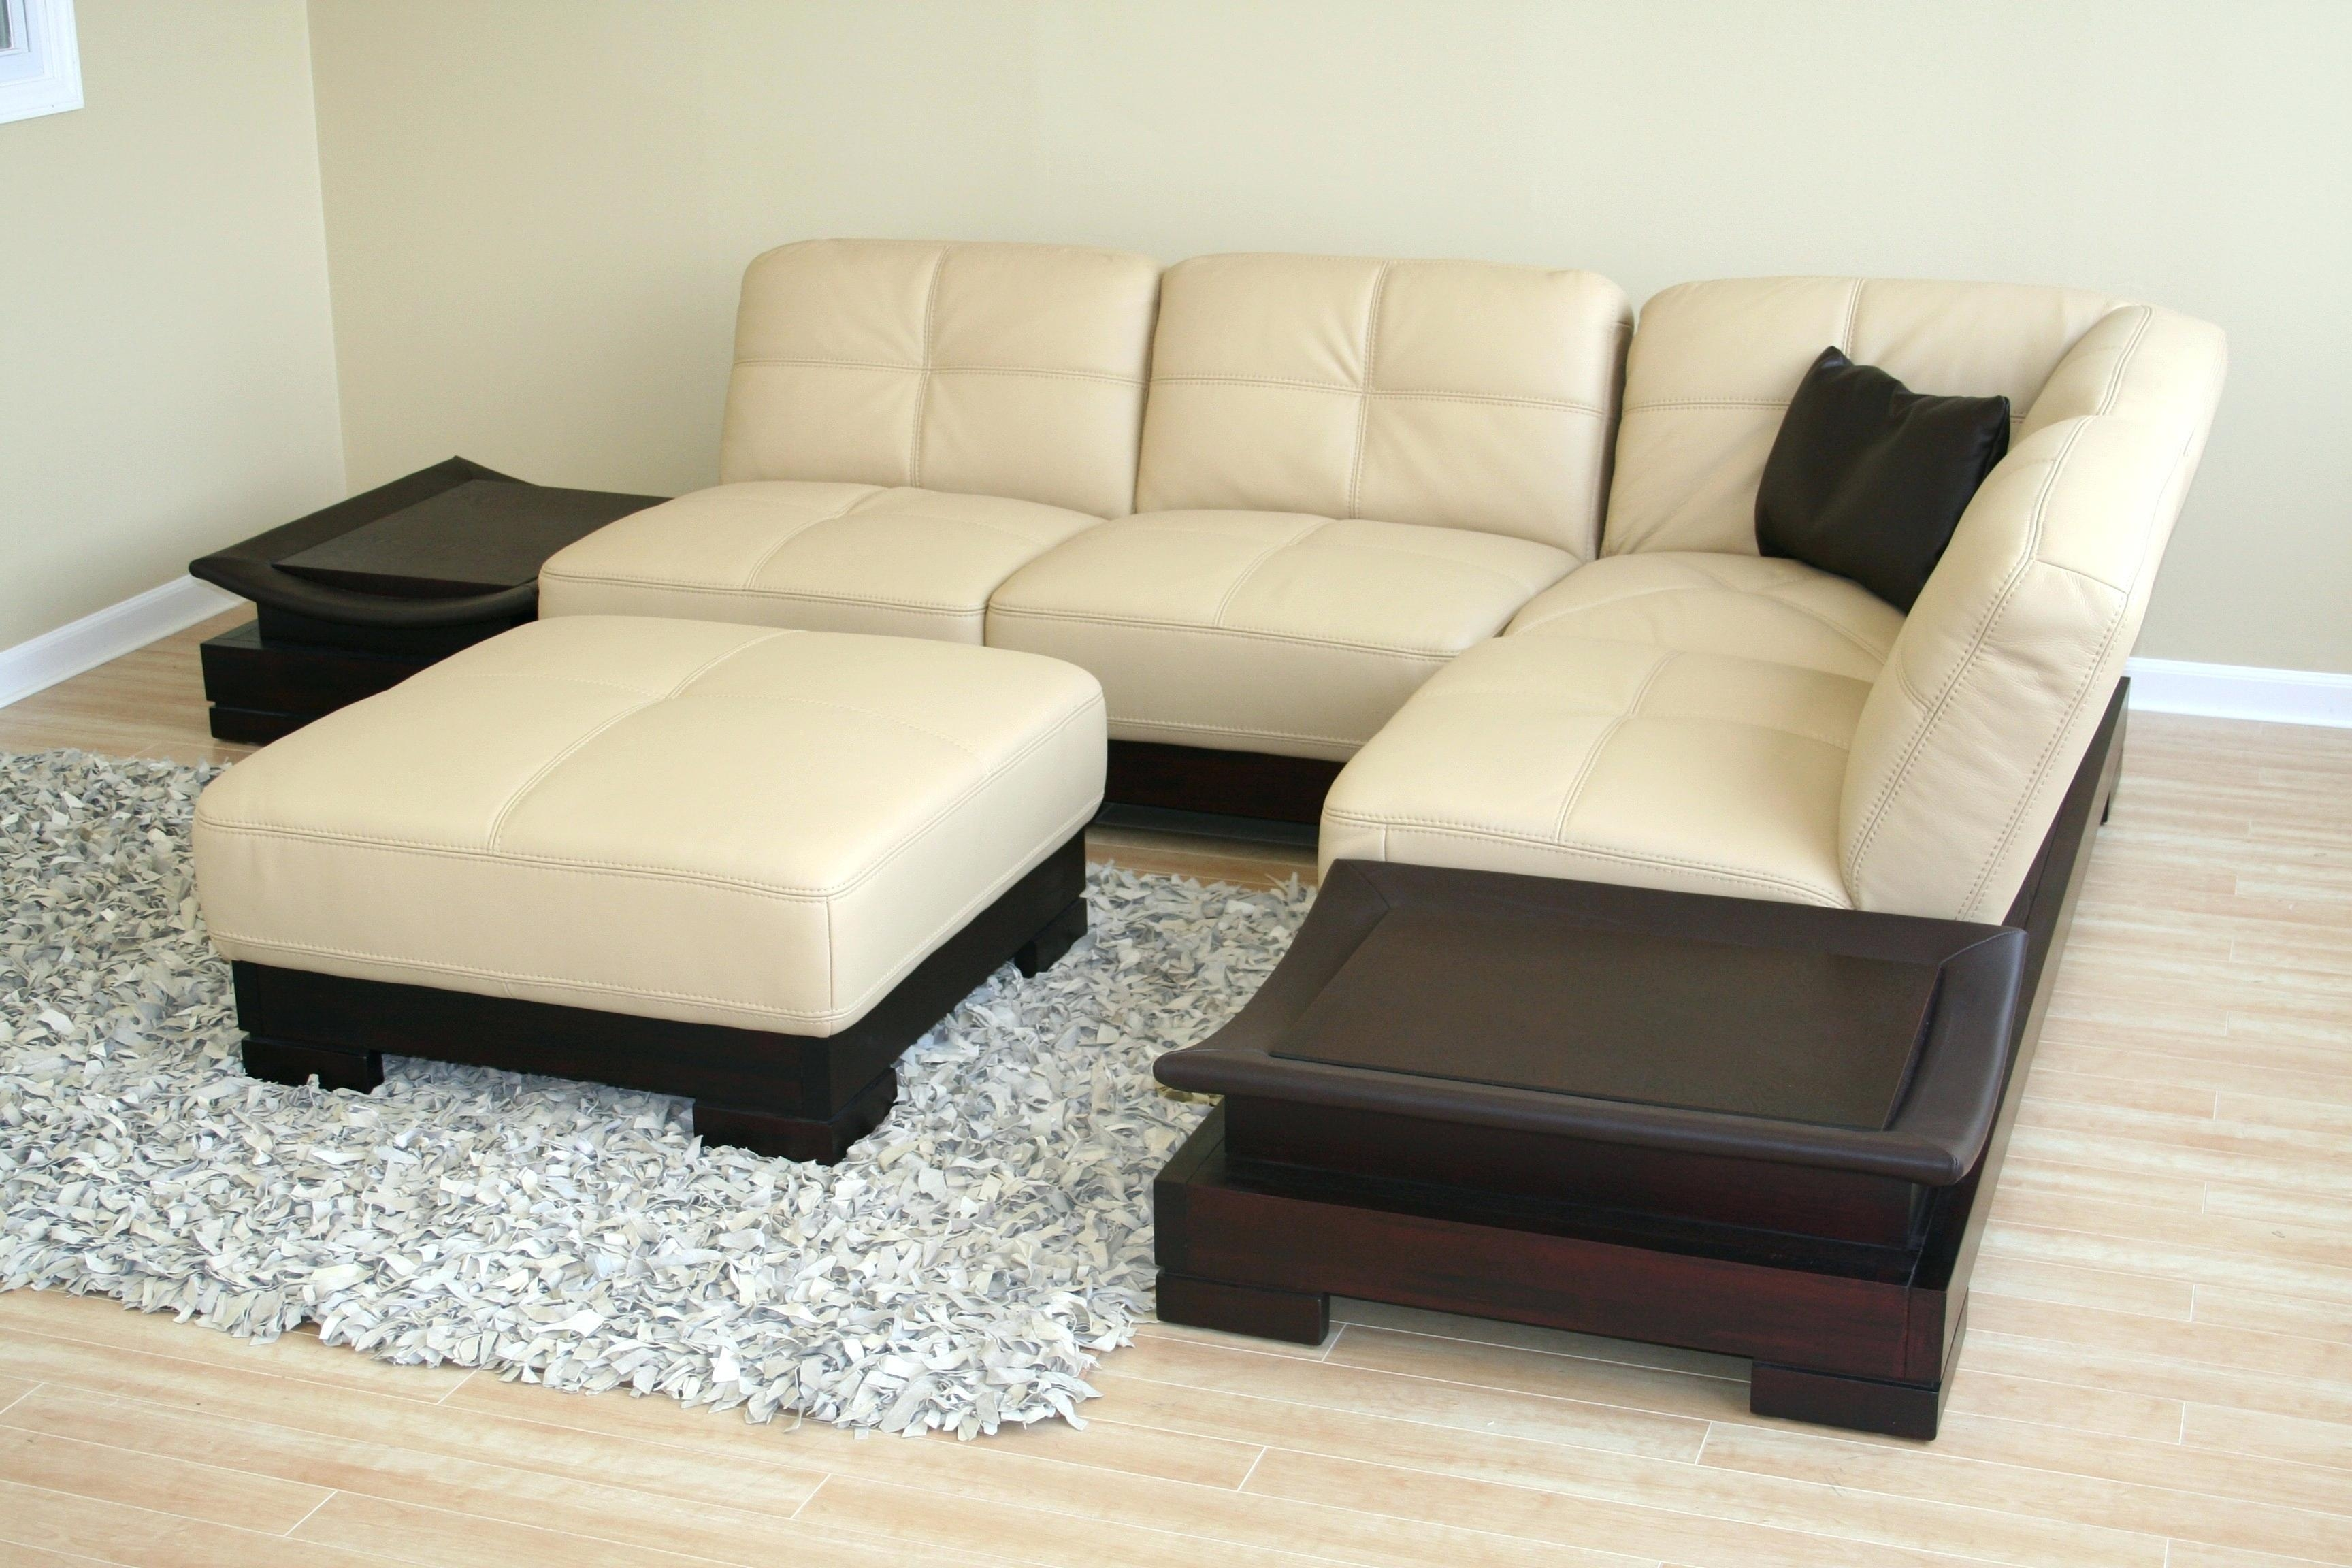 Cream Leather Couches Sale Sectional Sofa For Decorating Ideas Inside Cream Sectional Leather Sofas (Image 4 of 22)